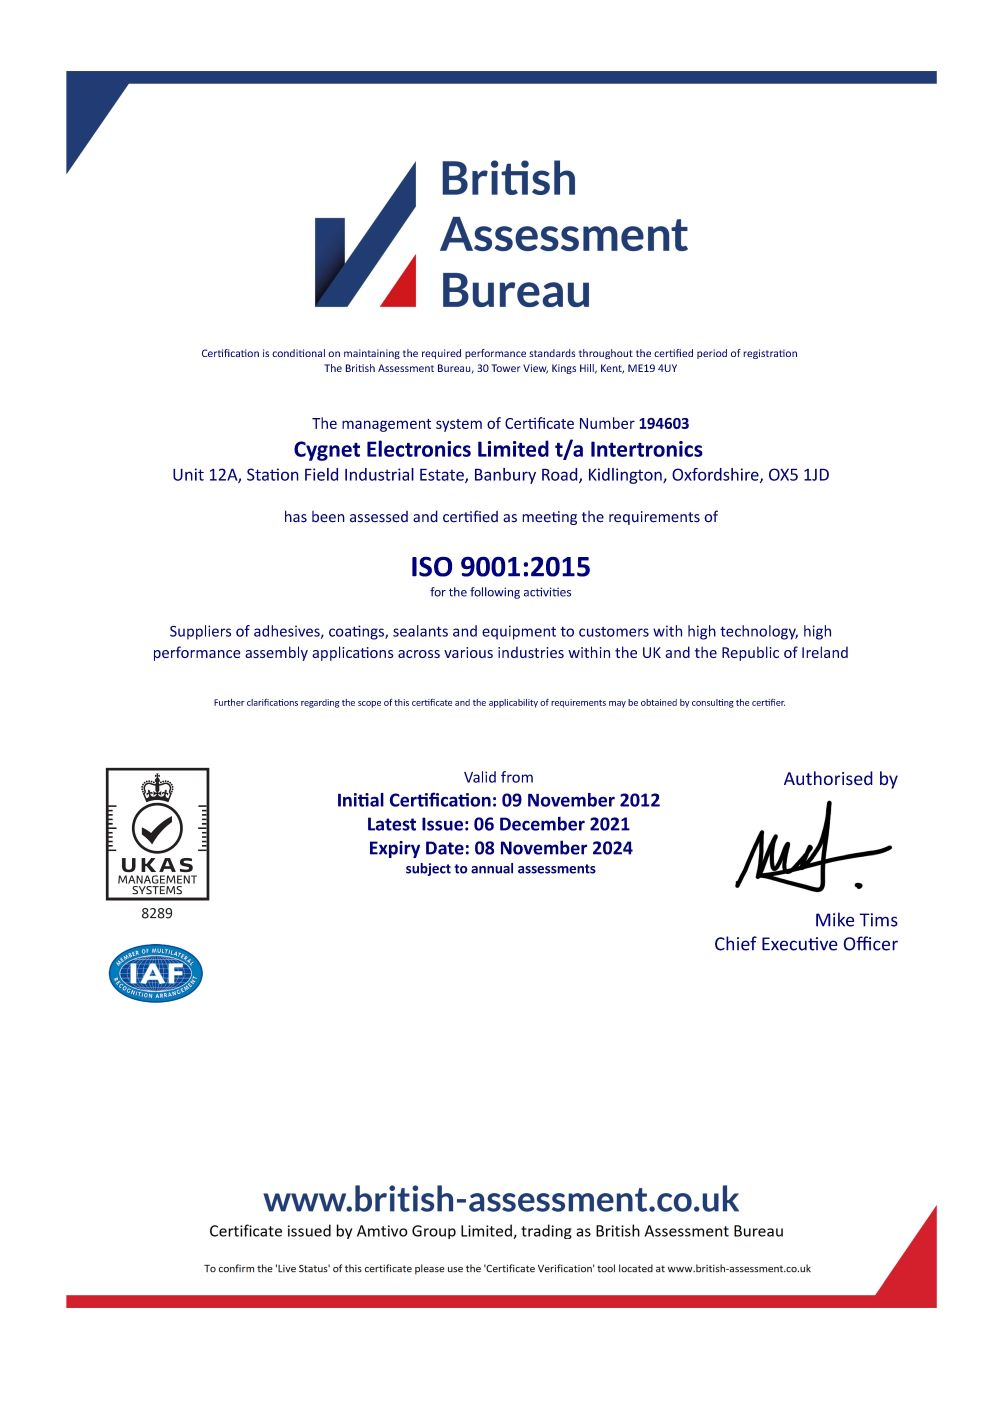 Download a copy of our certificate